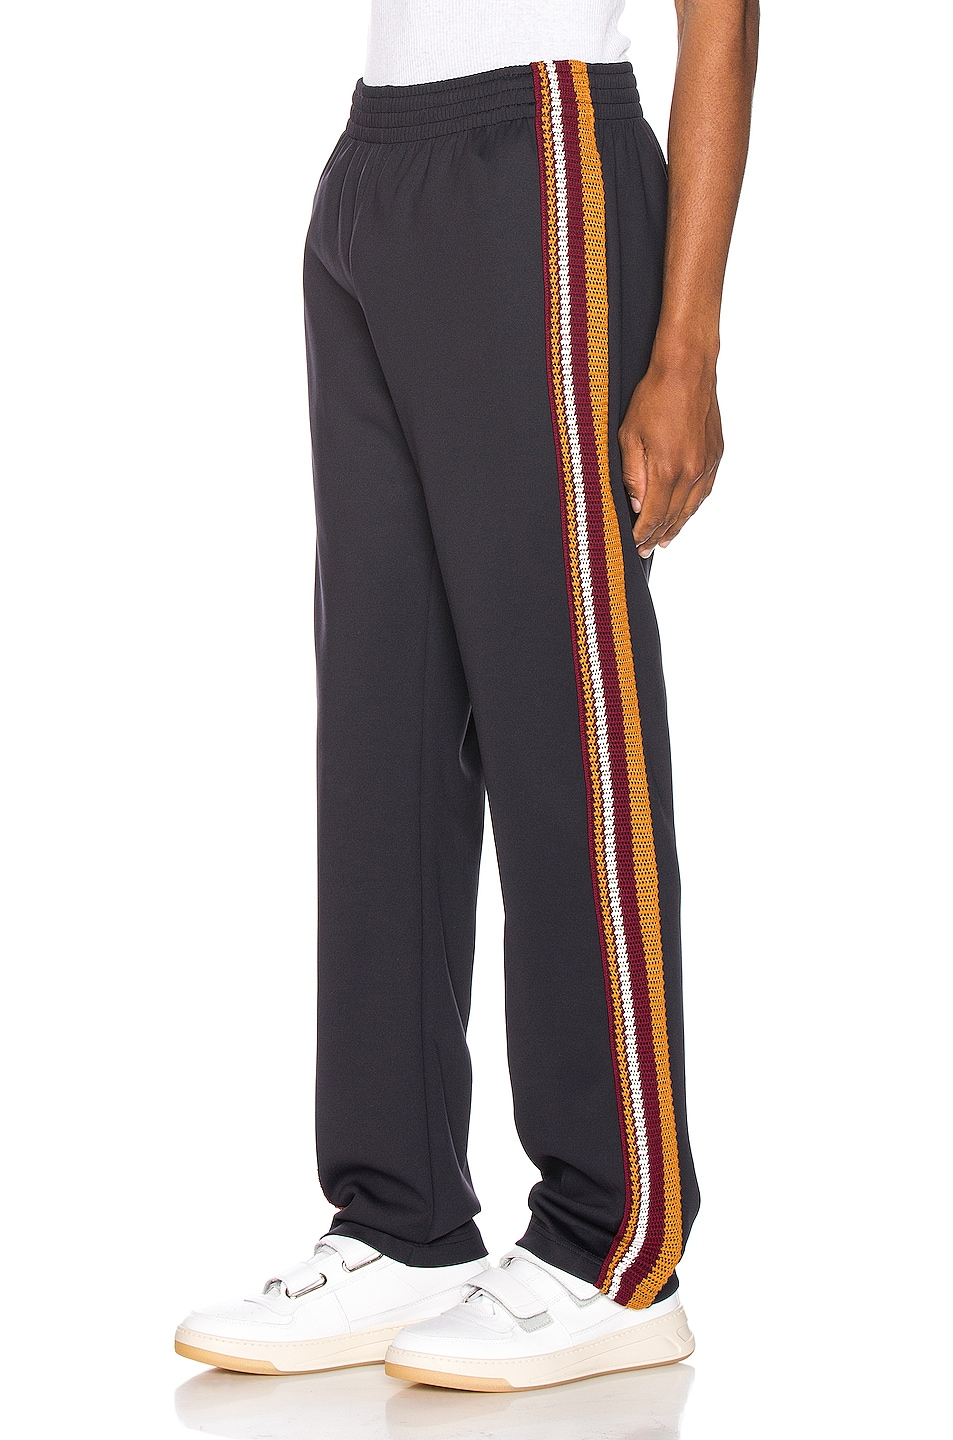 Wales Bonner Crochet Stripe Trackpants